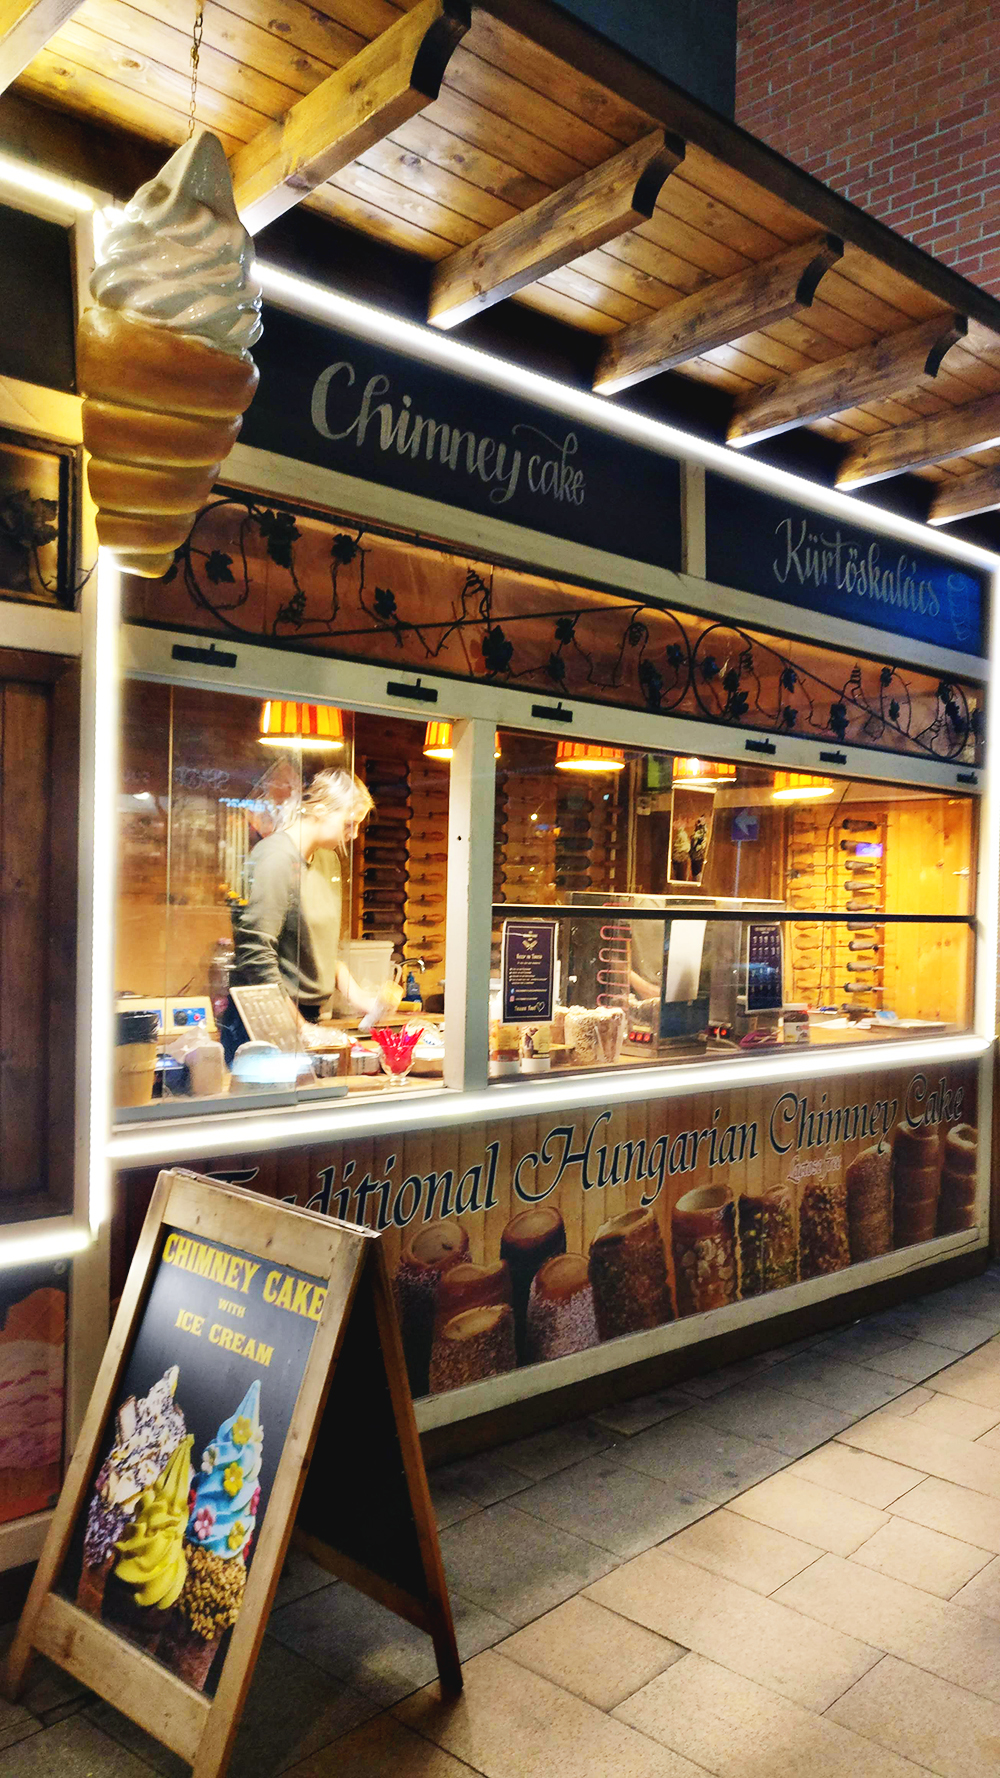 The Chimney Cake Shop at Király street - A local's guide to the best chimney cakes in Budapest, Hungary | Aliz's Wonderland #travel #Budapest #foodguide #chimneycake # Hungary